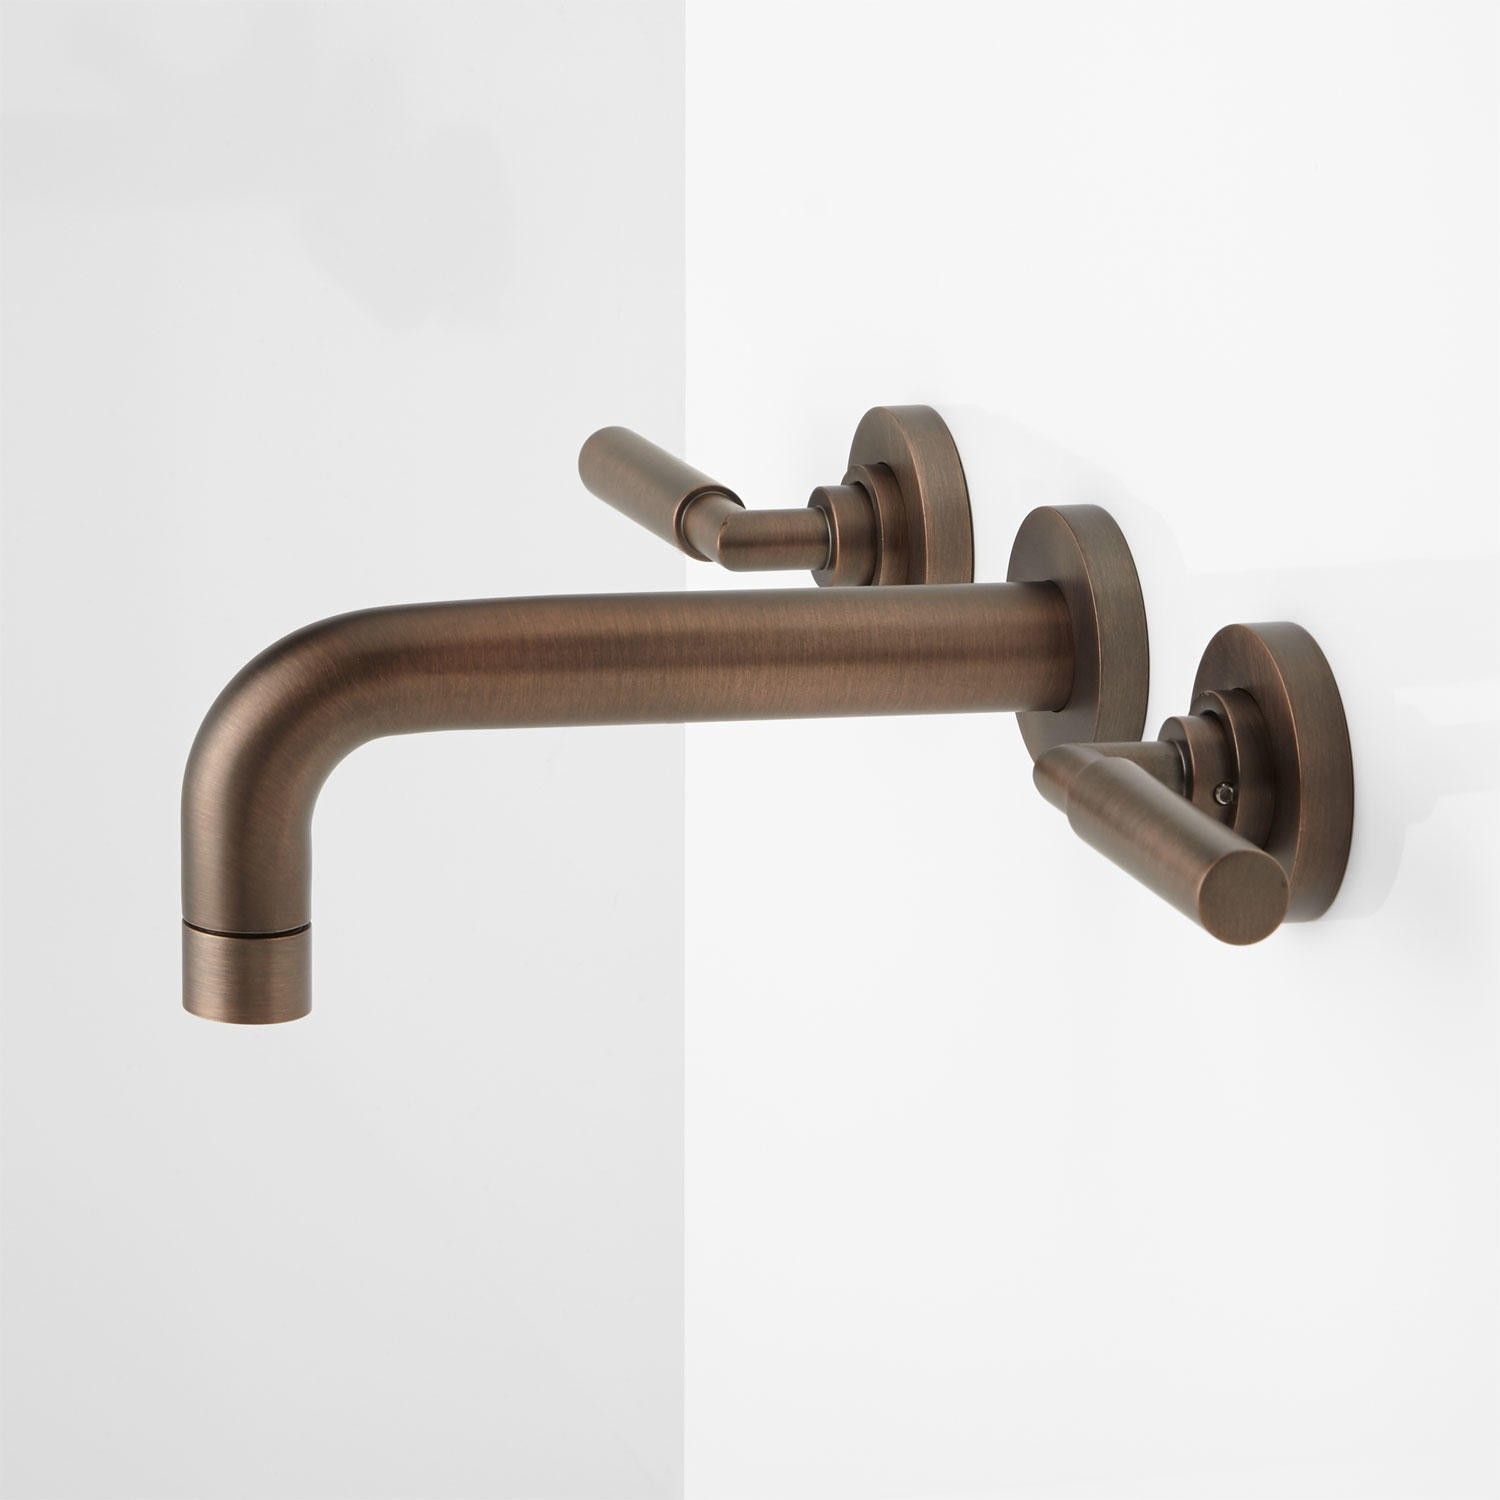 Triton Wall-Mount Bathroom Faucet - Lever Handles | Wall mount ...